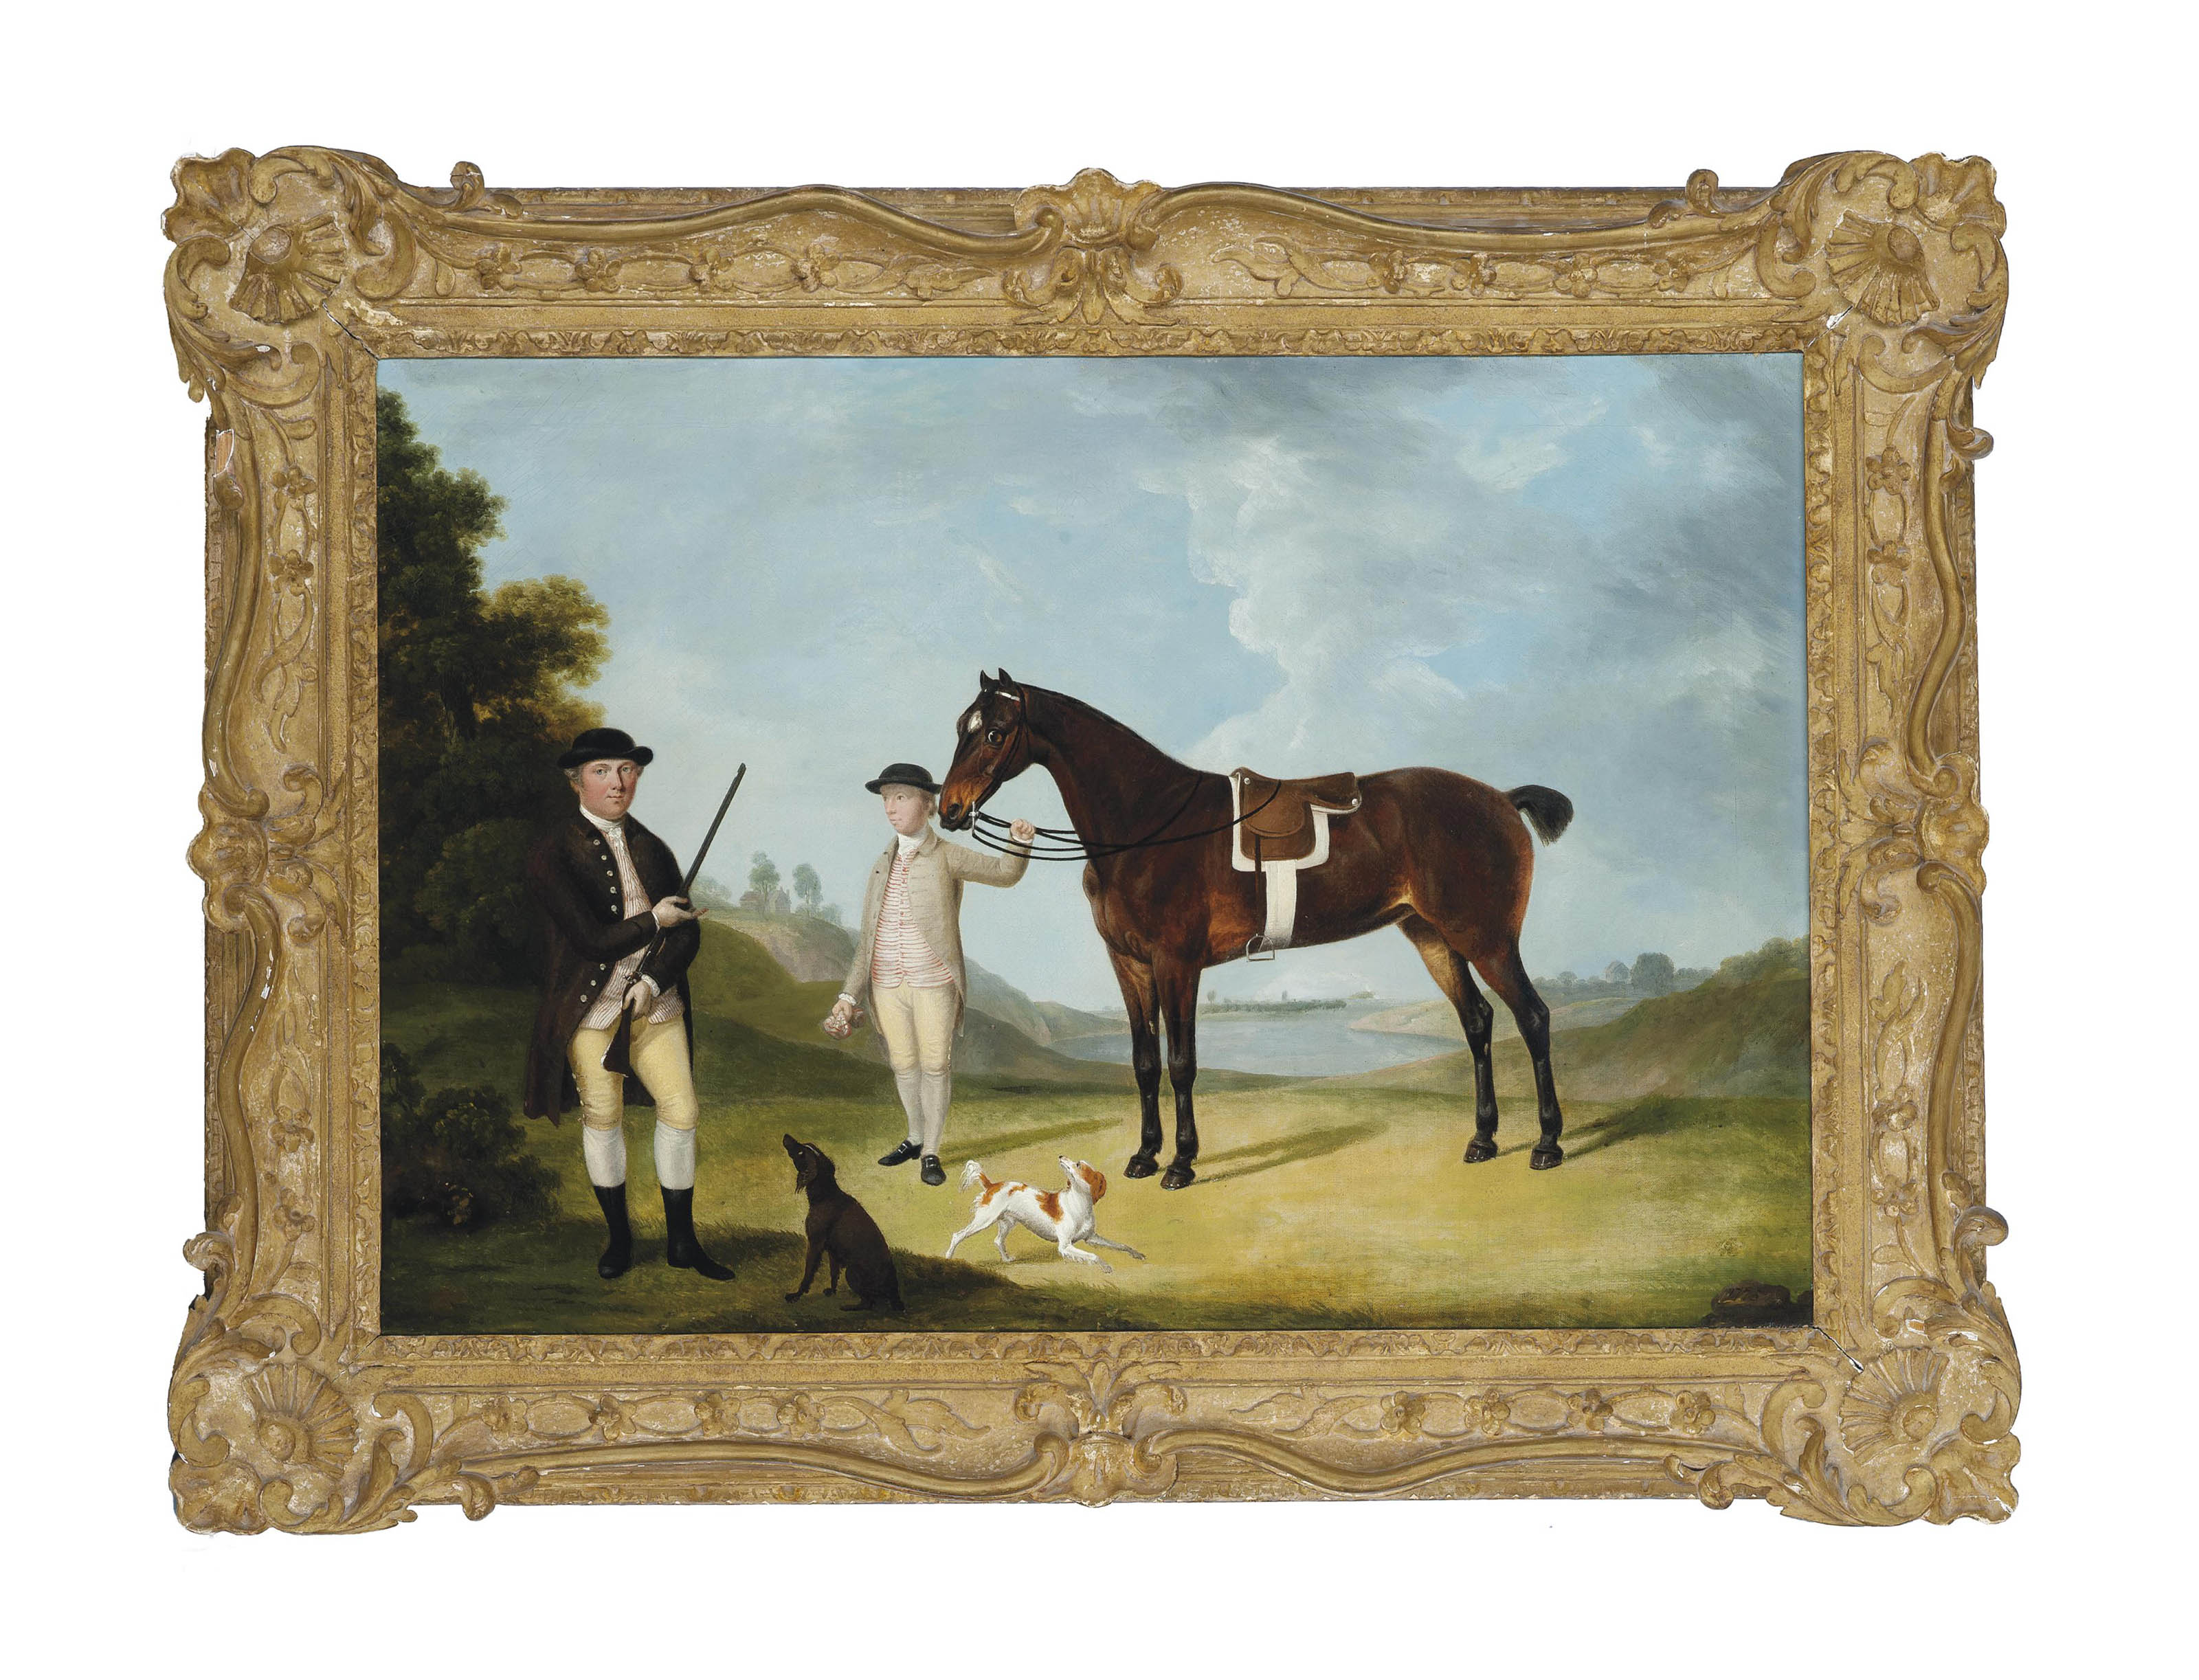 A gentleman and his hounds in an extensive landscape, his groom holding the reins of his chestnut hunter